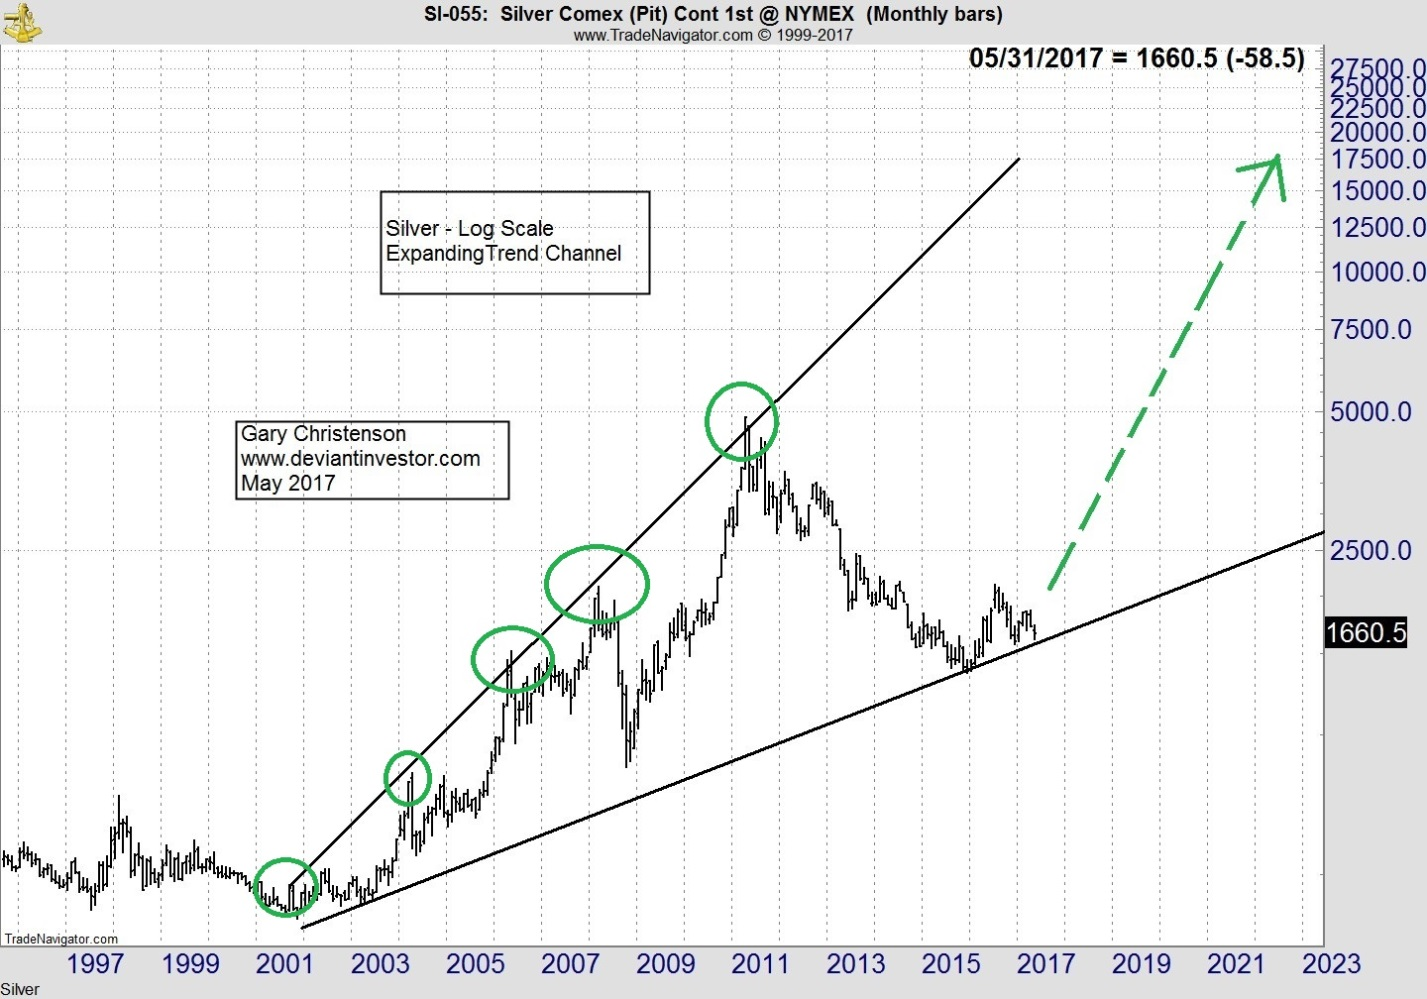 Silver COMEX Monthly Bars: 1999-2017